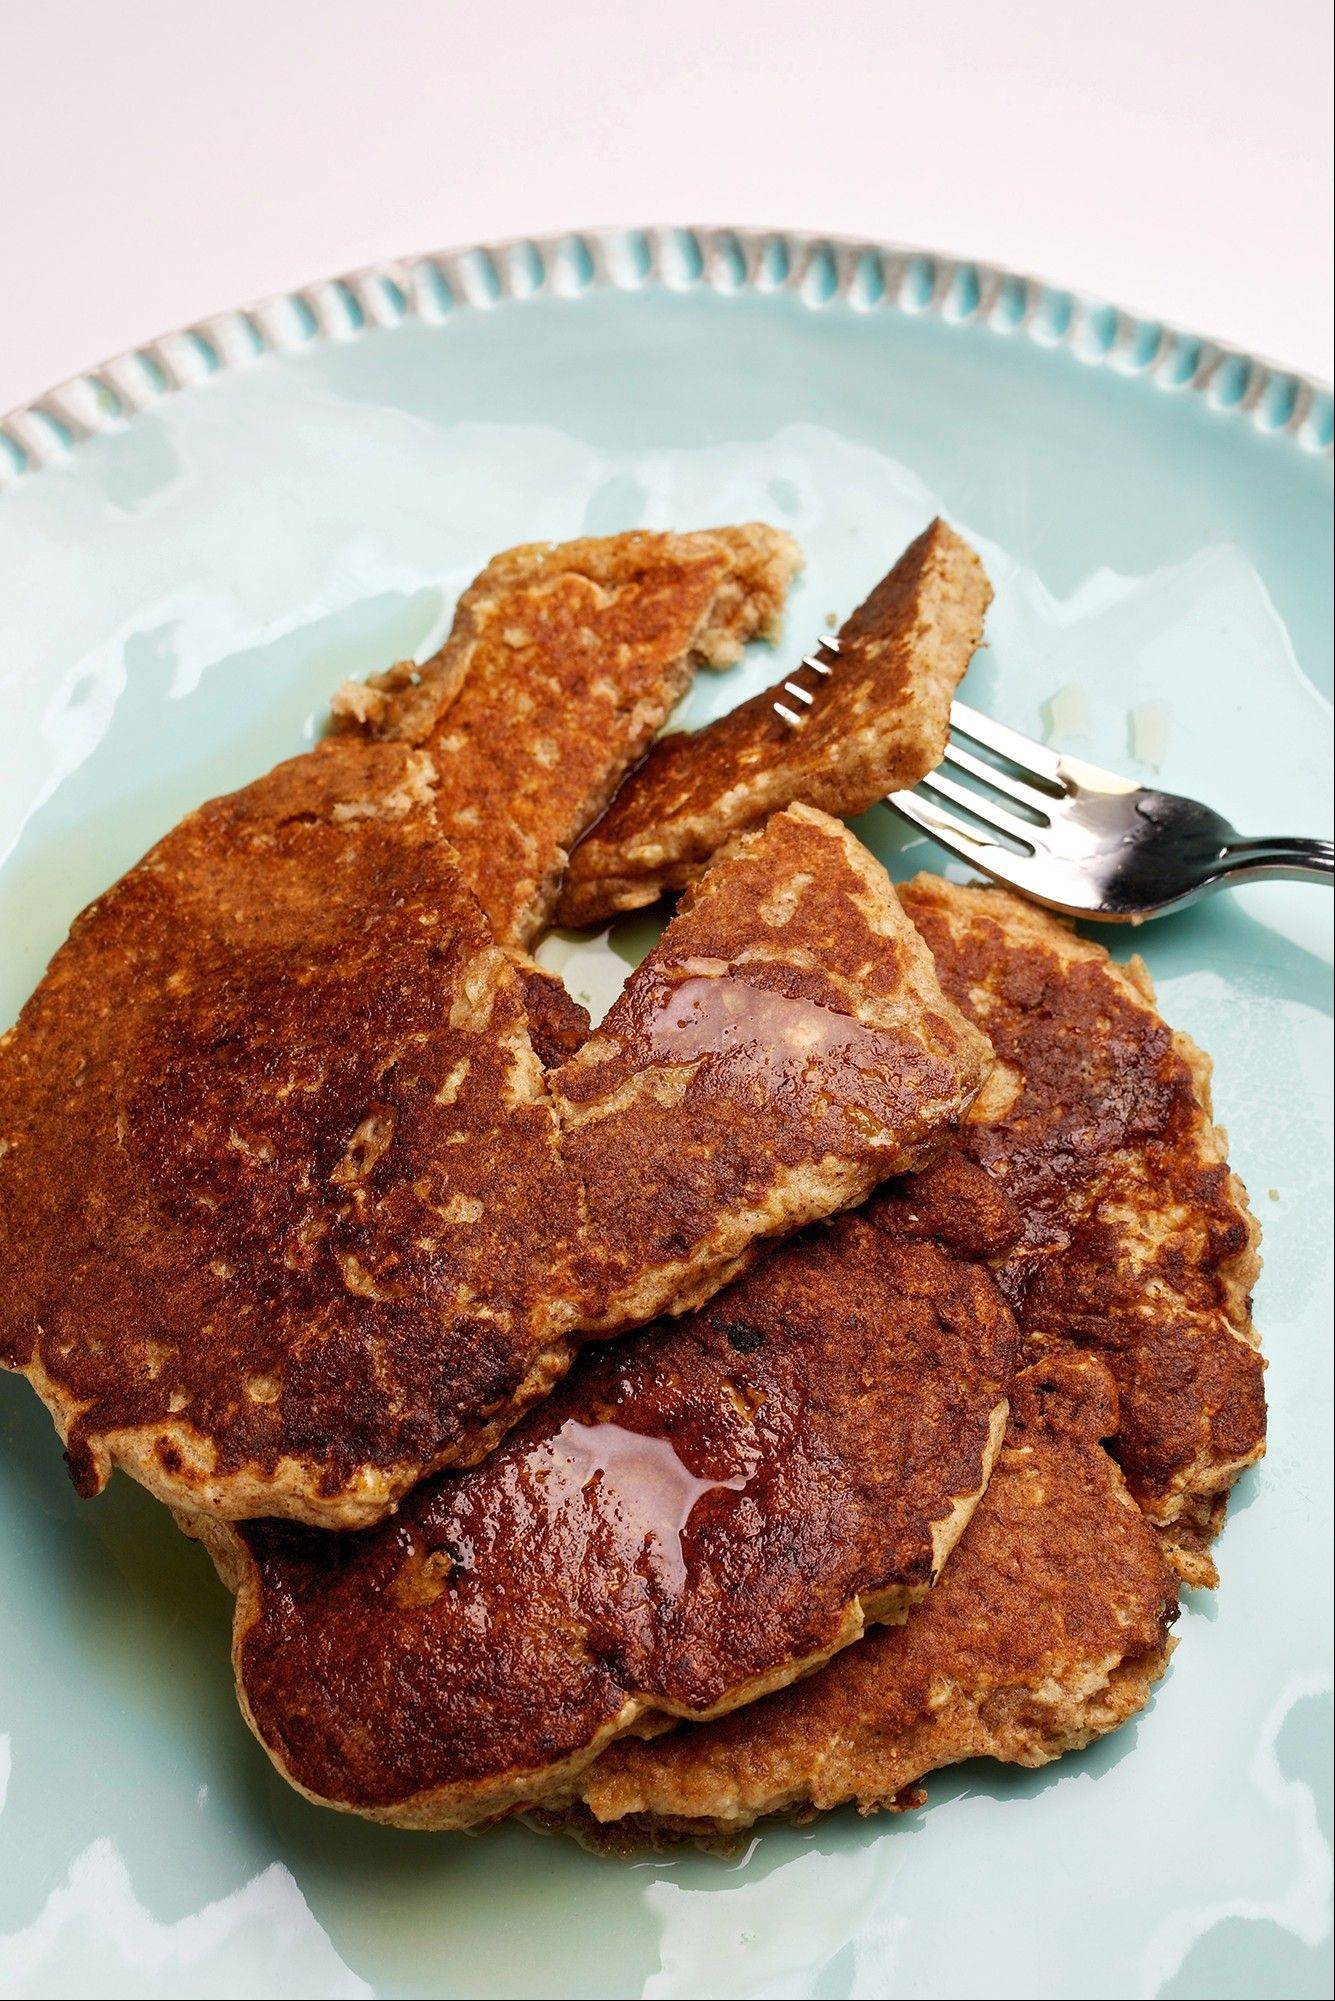 Reheat whole-wheat pancakes in the toaster for a quick, kid-friendly breakfast.